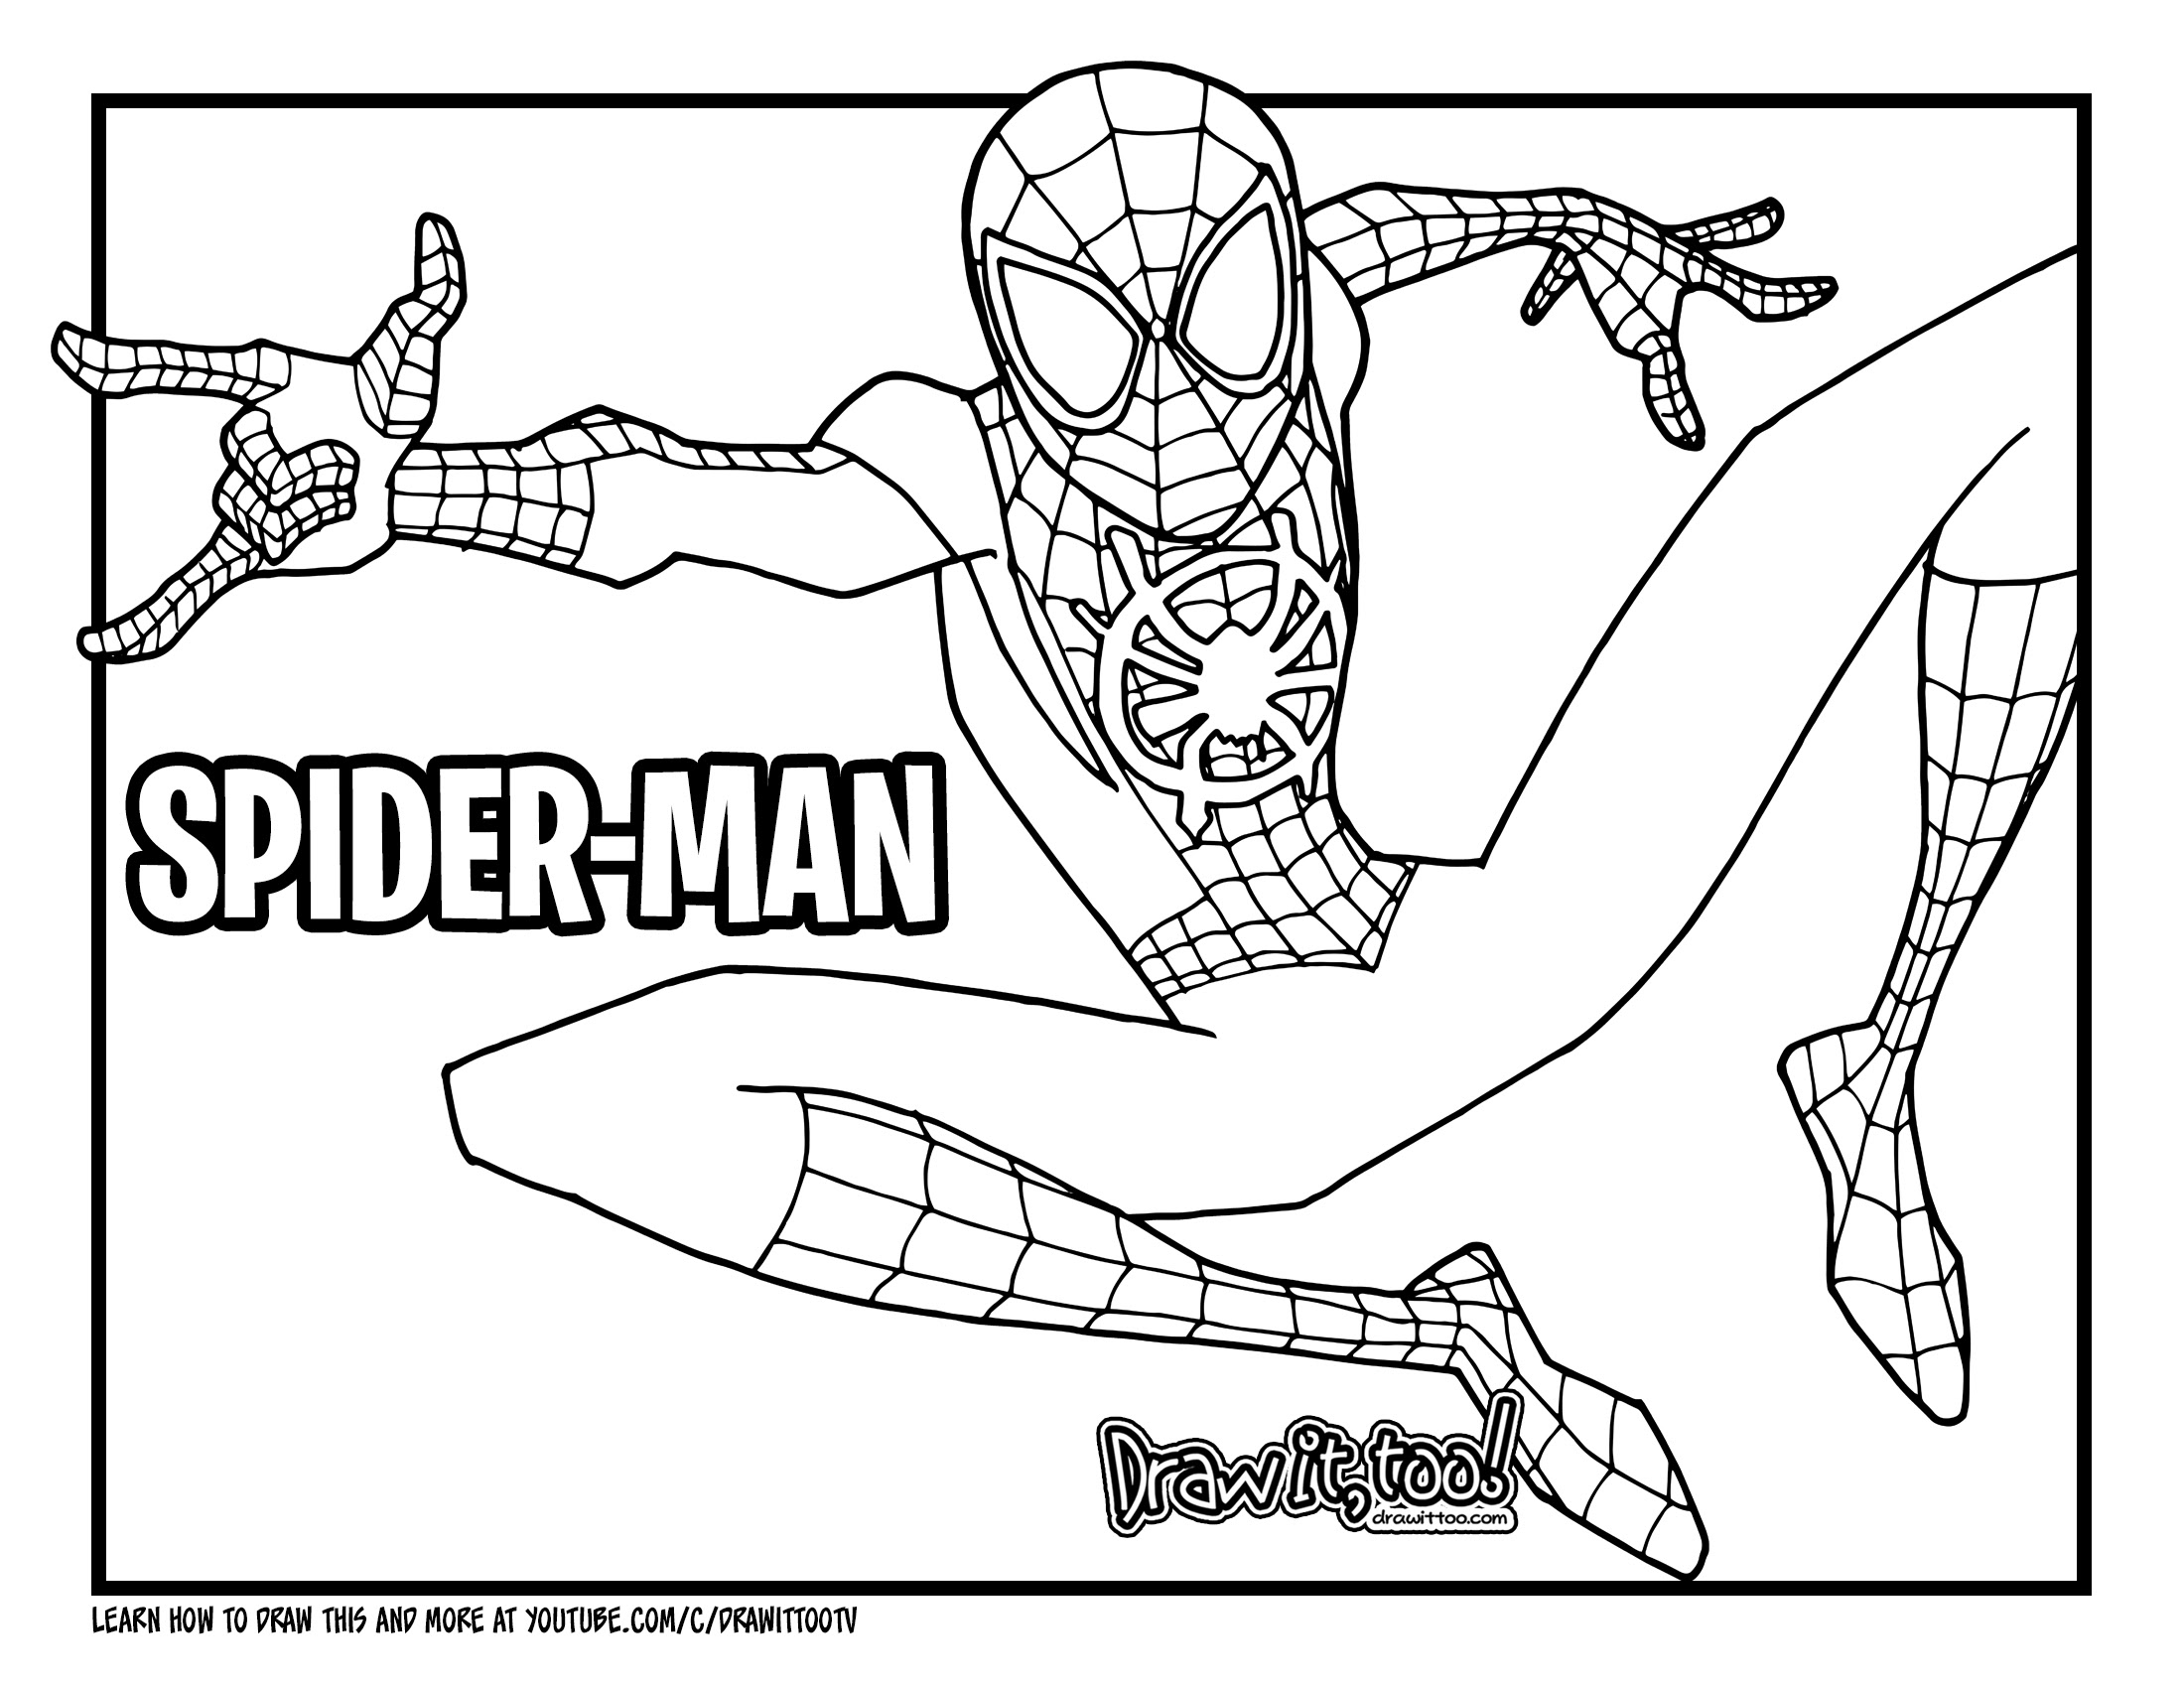 45 FREE SPIDER MAN MILES MORALES COLORING PAGES PRINTABLE PDF CDR DOWNLOAD DOCX TUTORIAL with ...